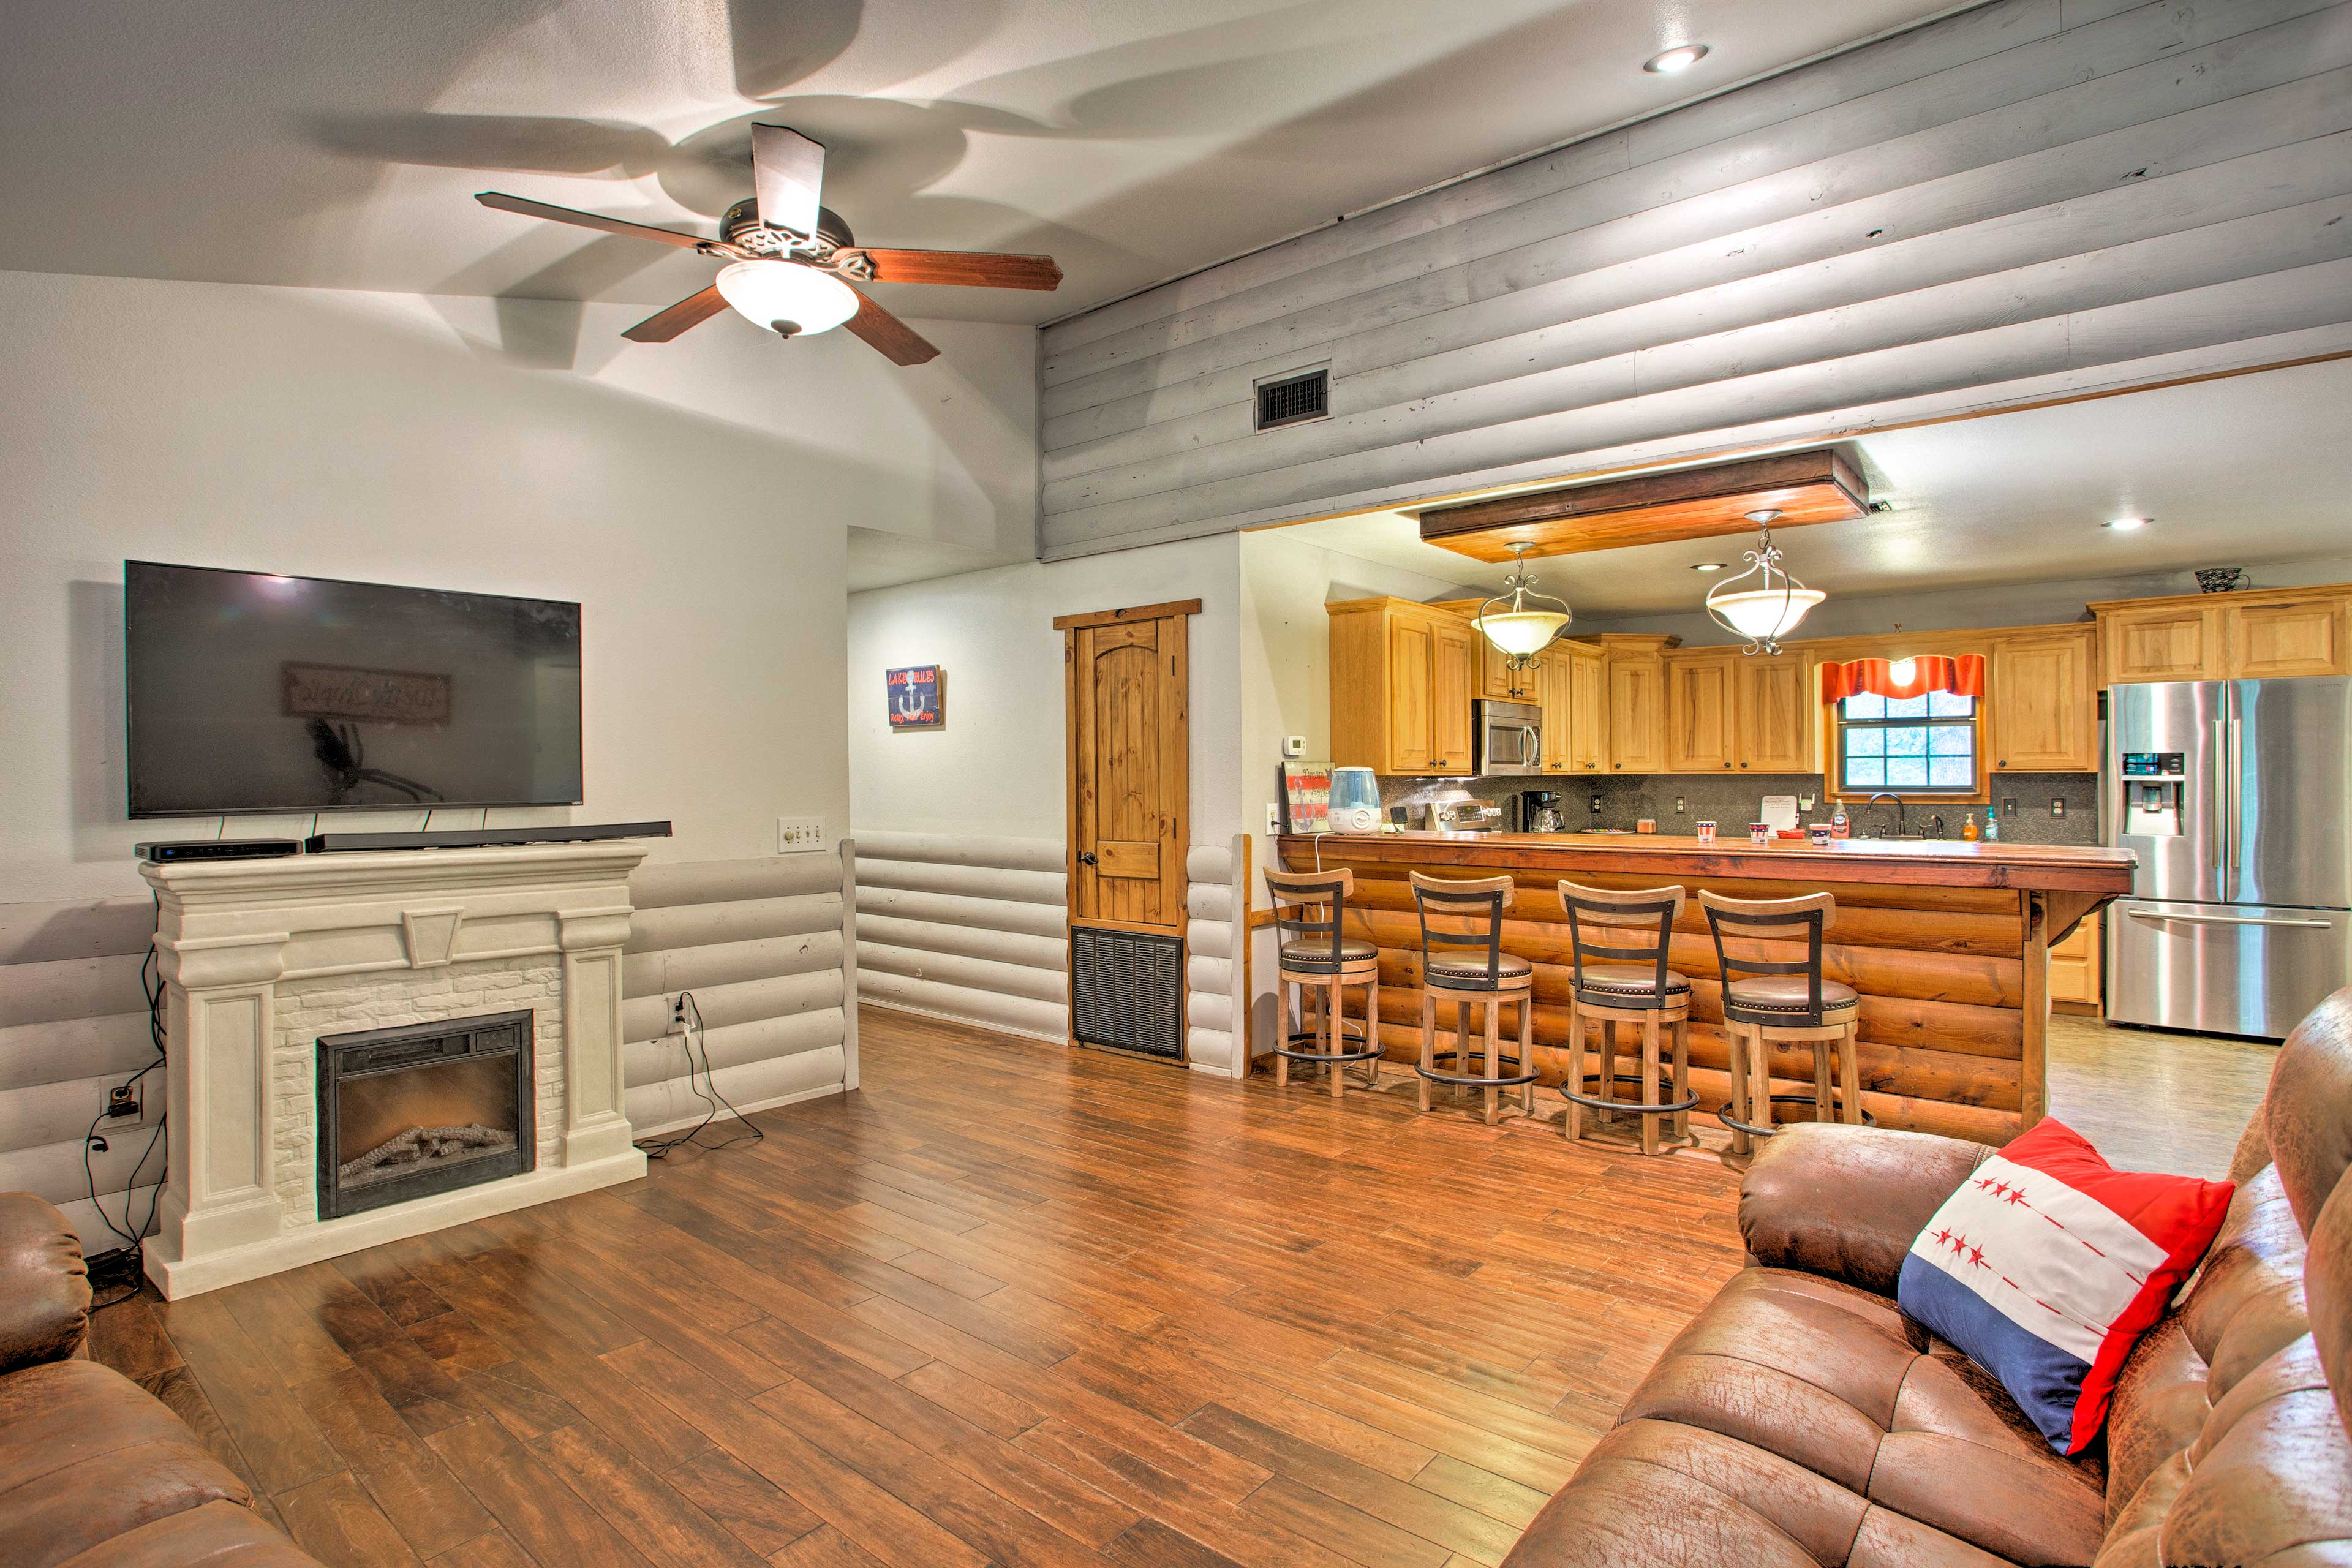 Inside, you'll find 4 bedrooms, 2 bathrooms, and room for 12 guests.